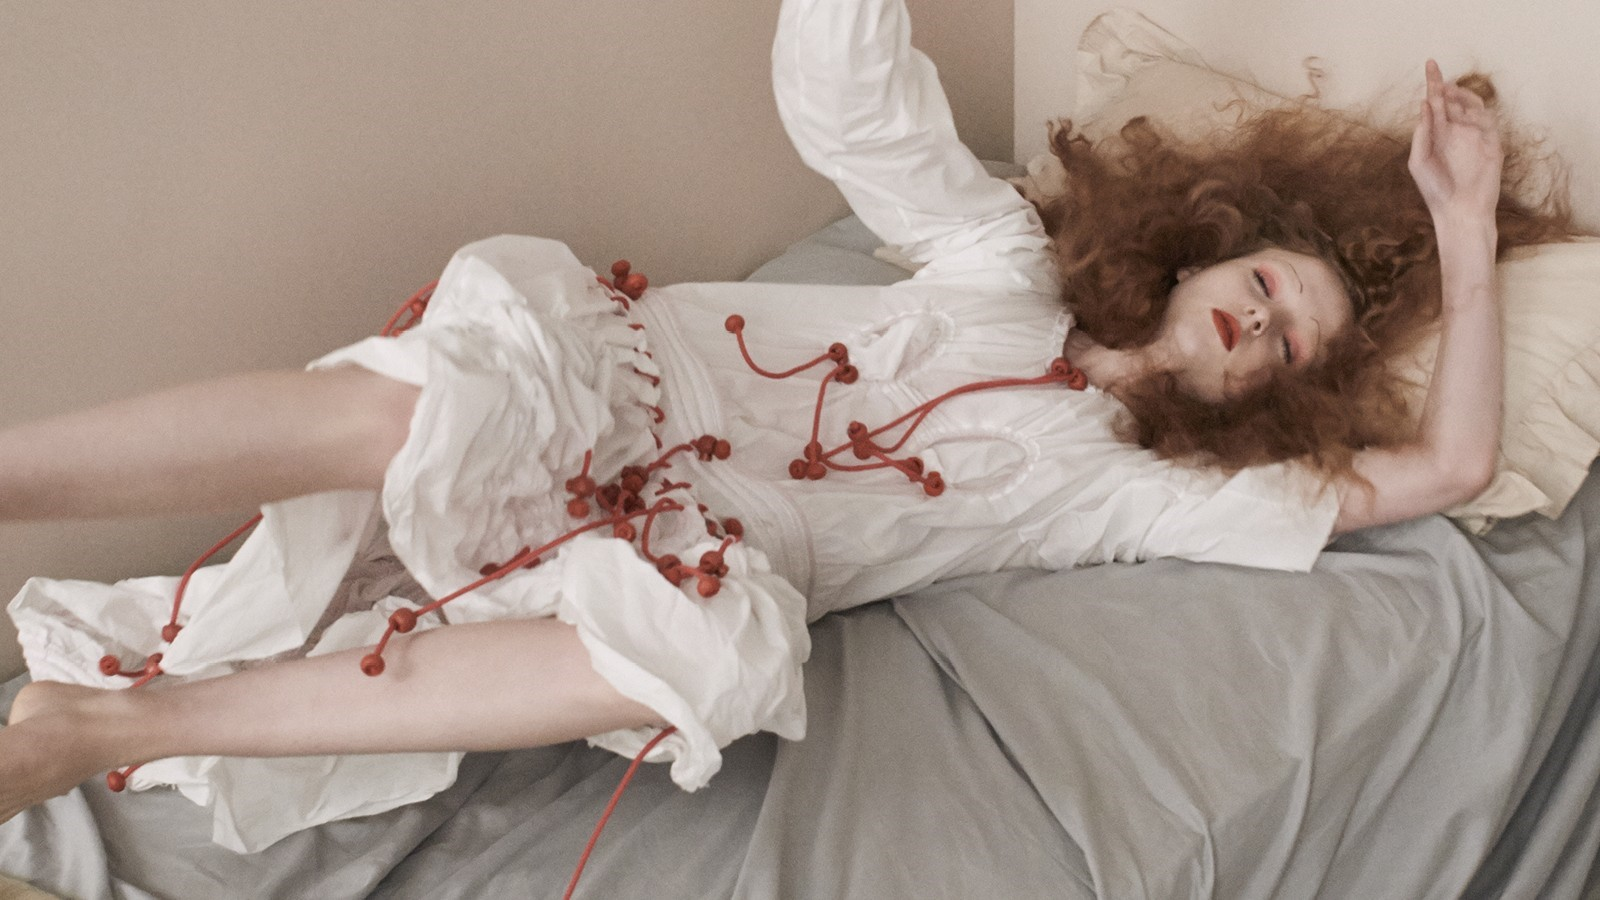 Nostalgia ultra Dazed Spring 2015 issue, Madison Stubbington